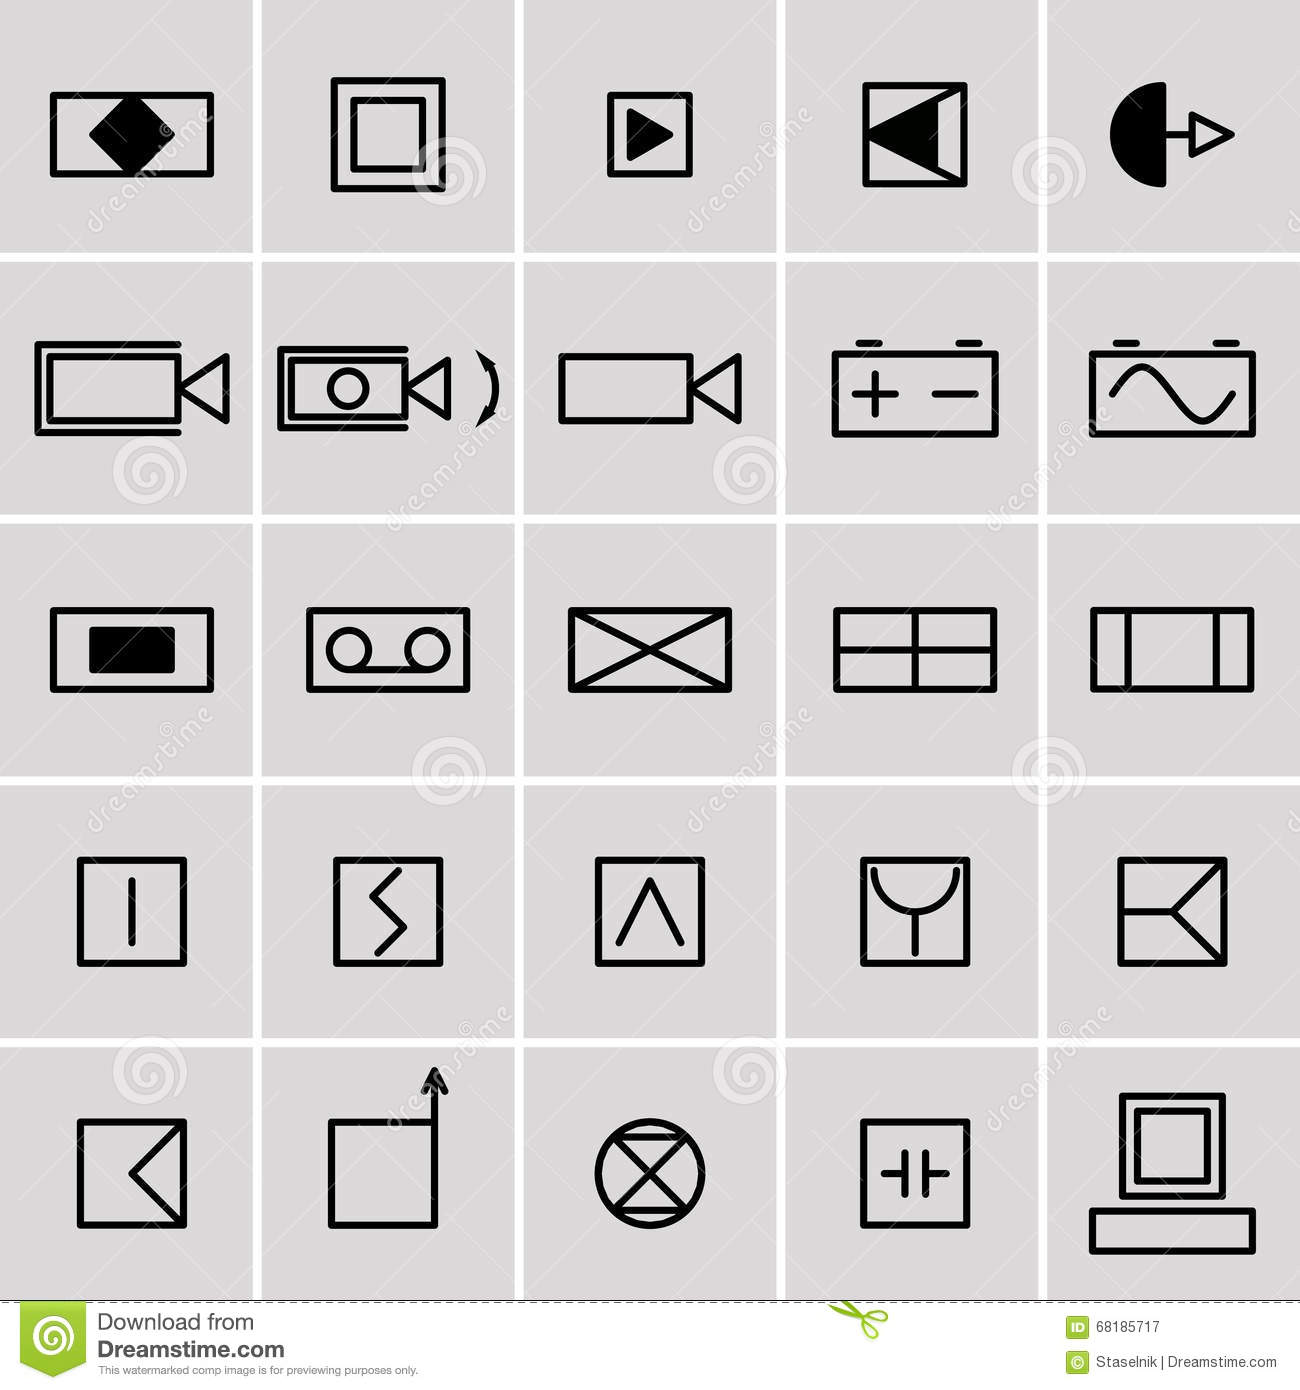 Icons electrical symbols stock vector. Illustration of group - 68185717